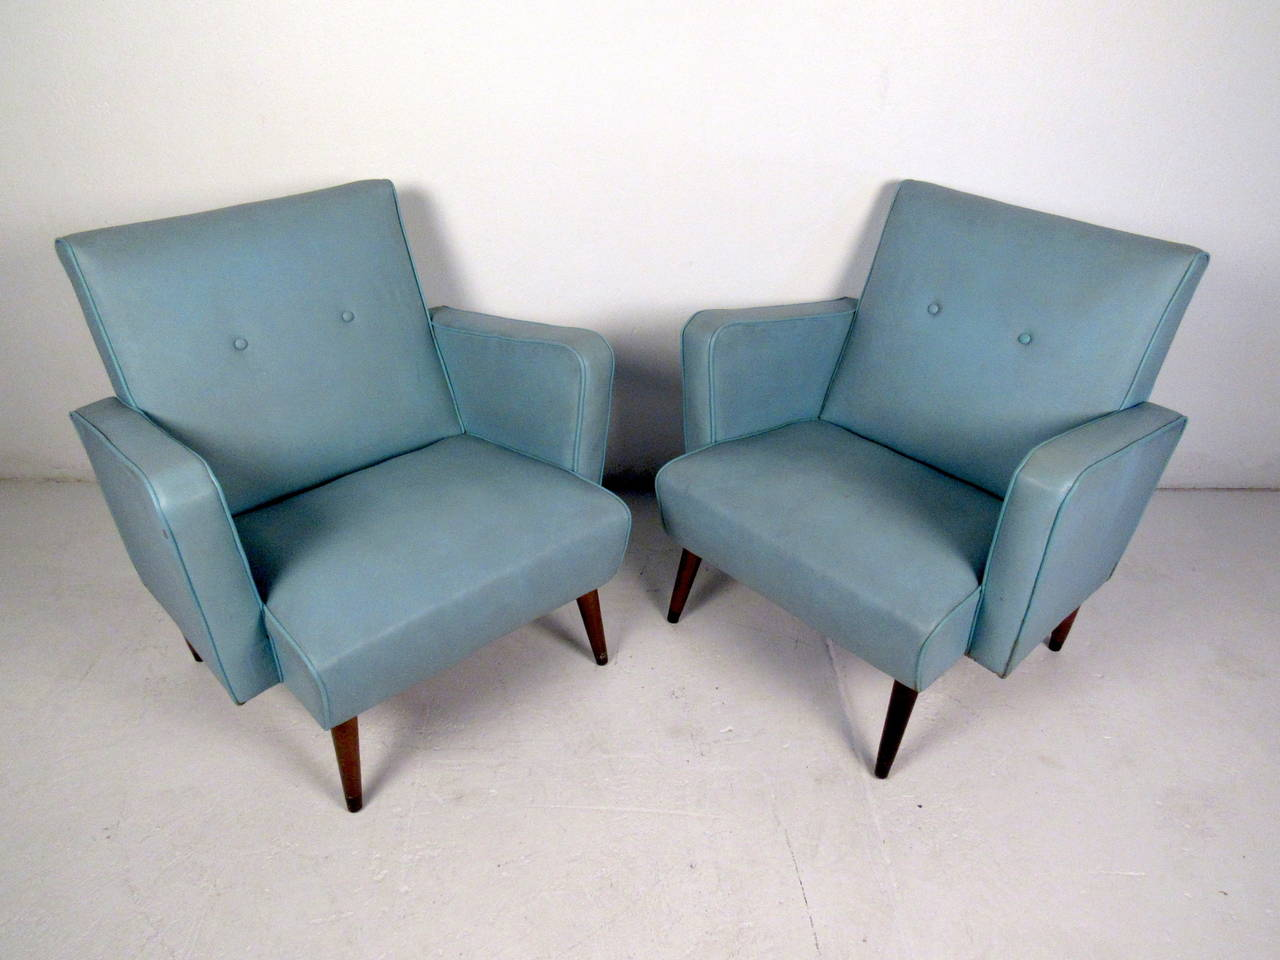 American Pair Of Mid Century Modern Vinyl Lounge Chairs In The Style Of  Paul McCobb